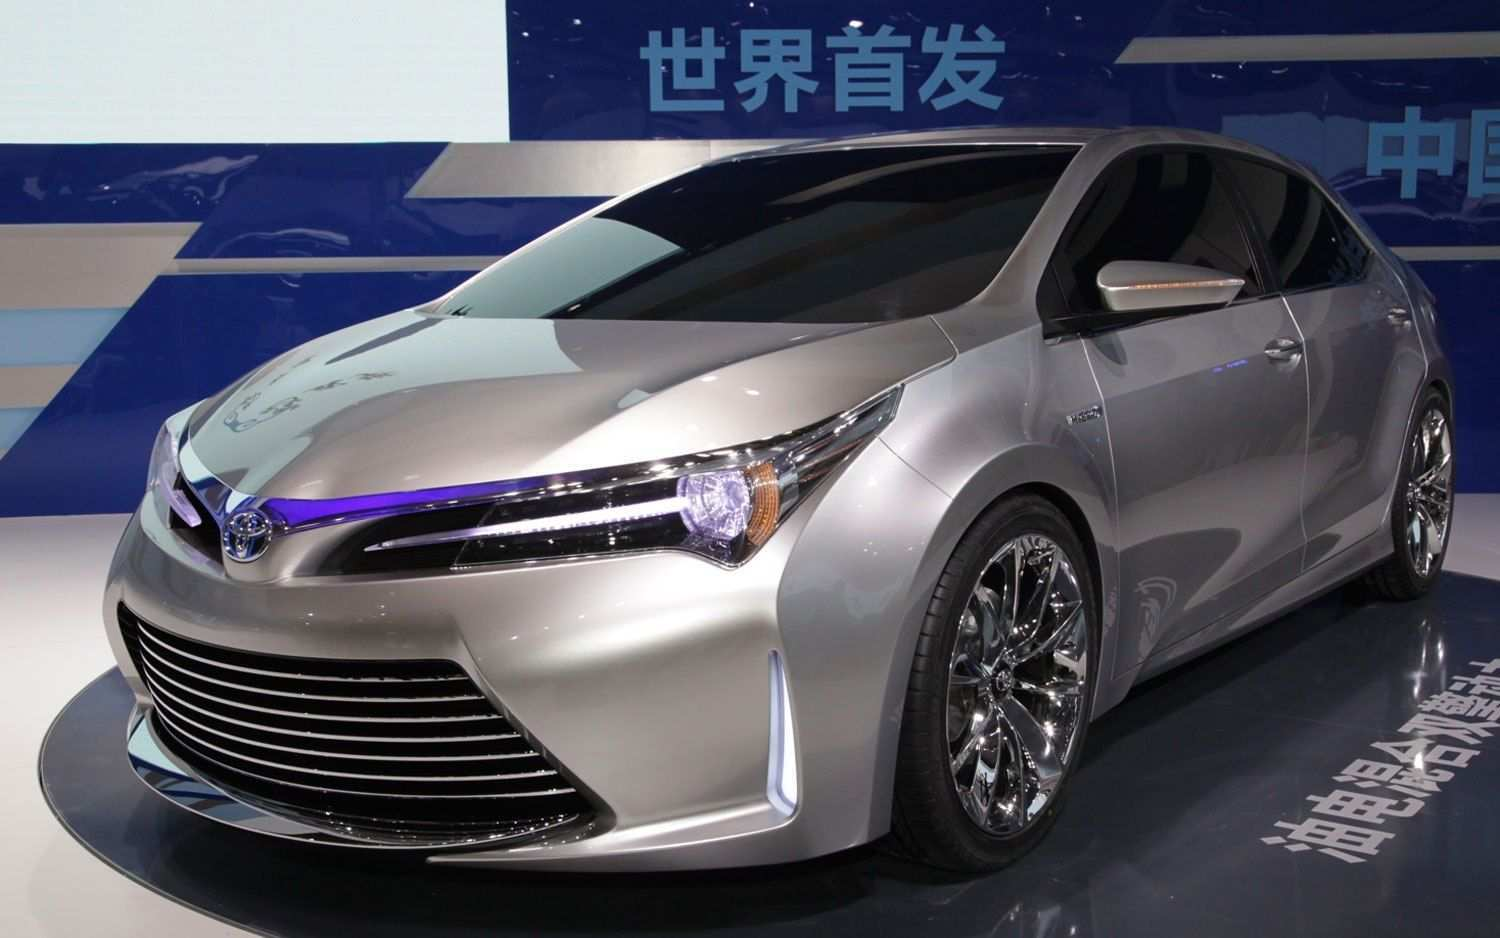 67 All New Toyota 2020 Vios Configurations with Toyota 2020 Vios